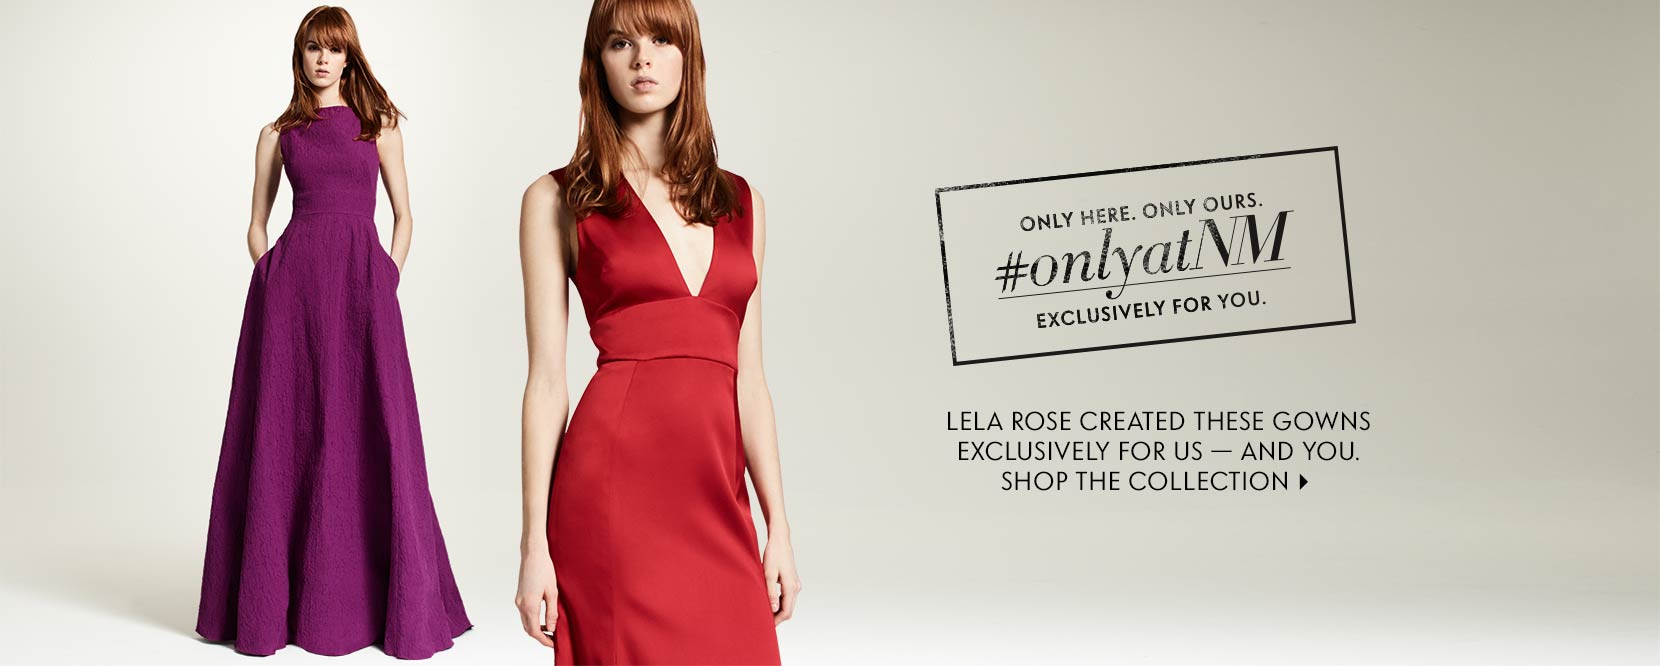 #onlyatnm Lela Rose created these gowns exclusively for us- and you. Shop the collection